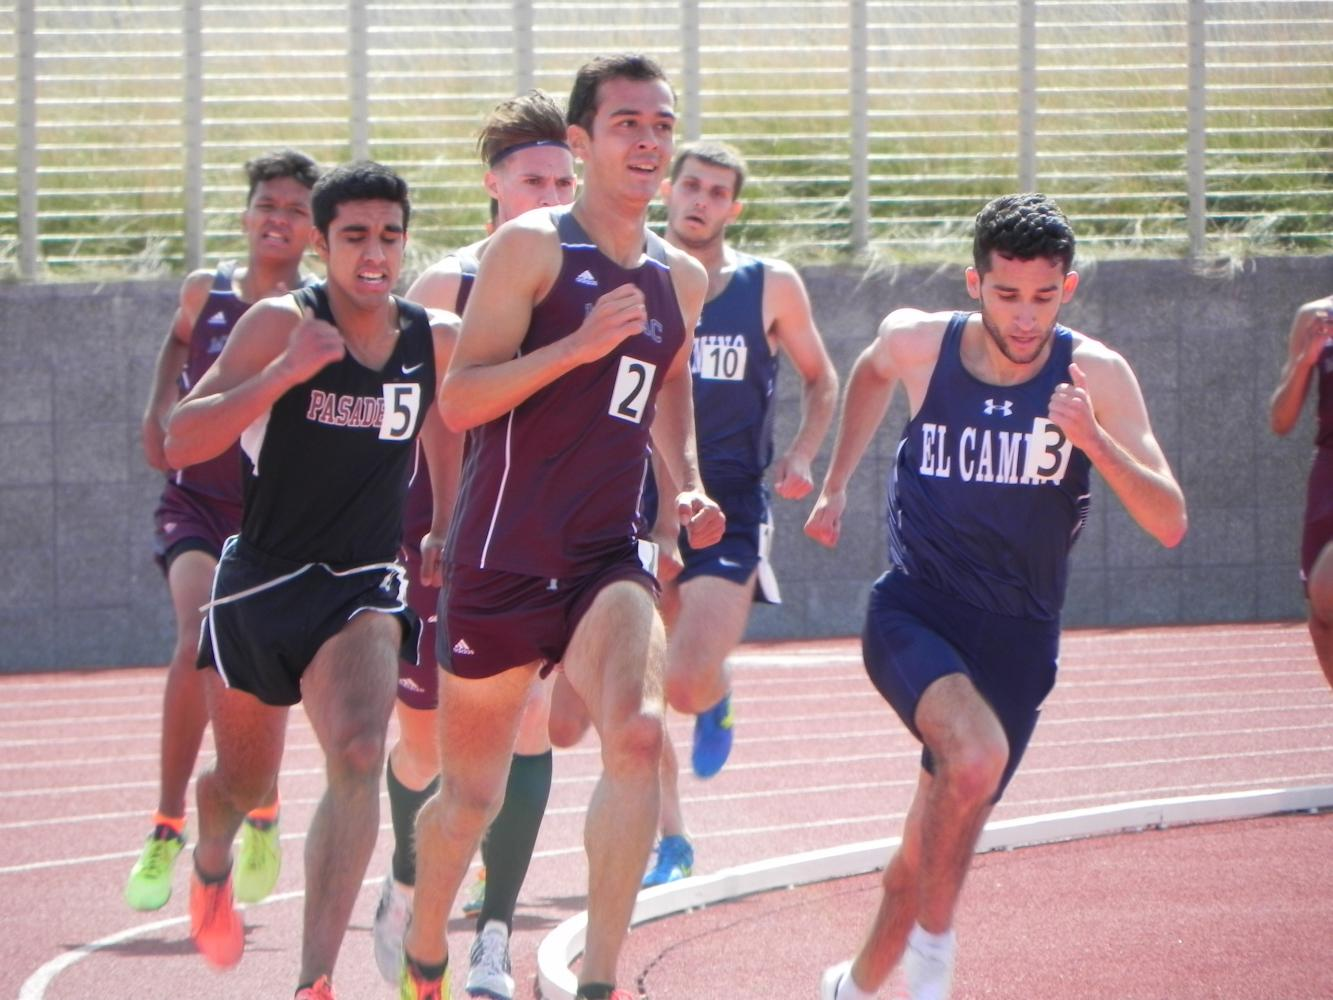 El Camino's Israel Cardona (right) begins to make his move to the front of the pack in the men's 1500 meter race at Murdock Stadium on Friday, April 28. Cardona won the event with a time of 4:05.21. Photo credit: Don Perez